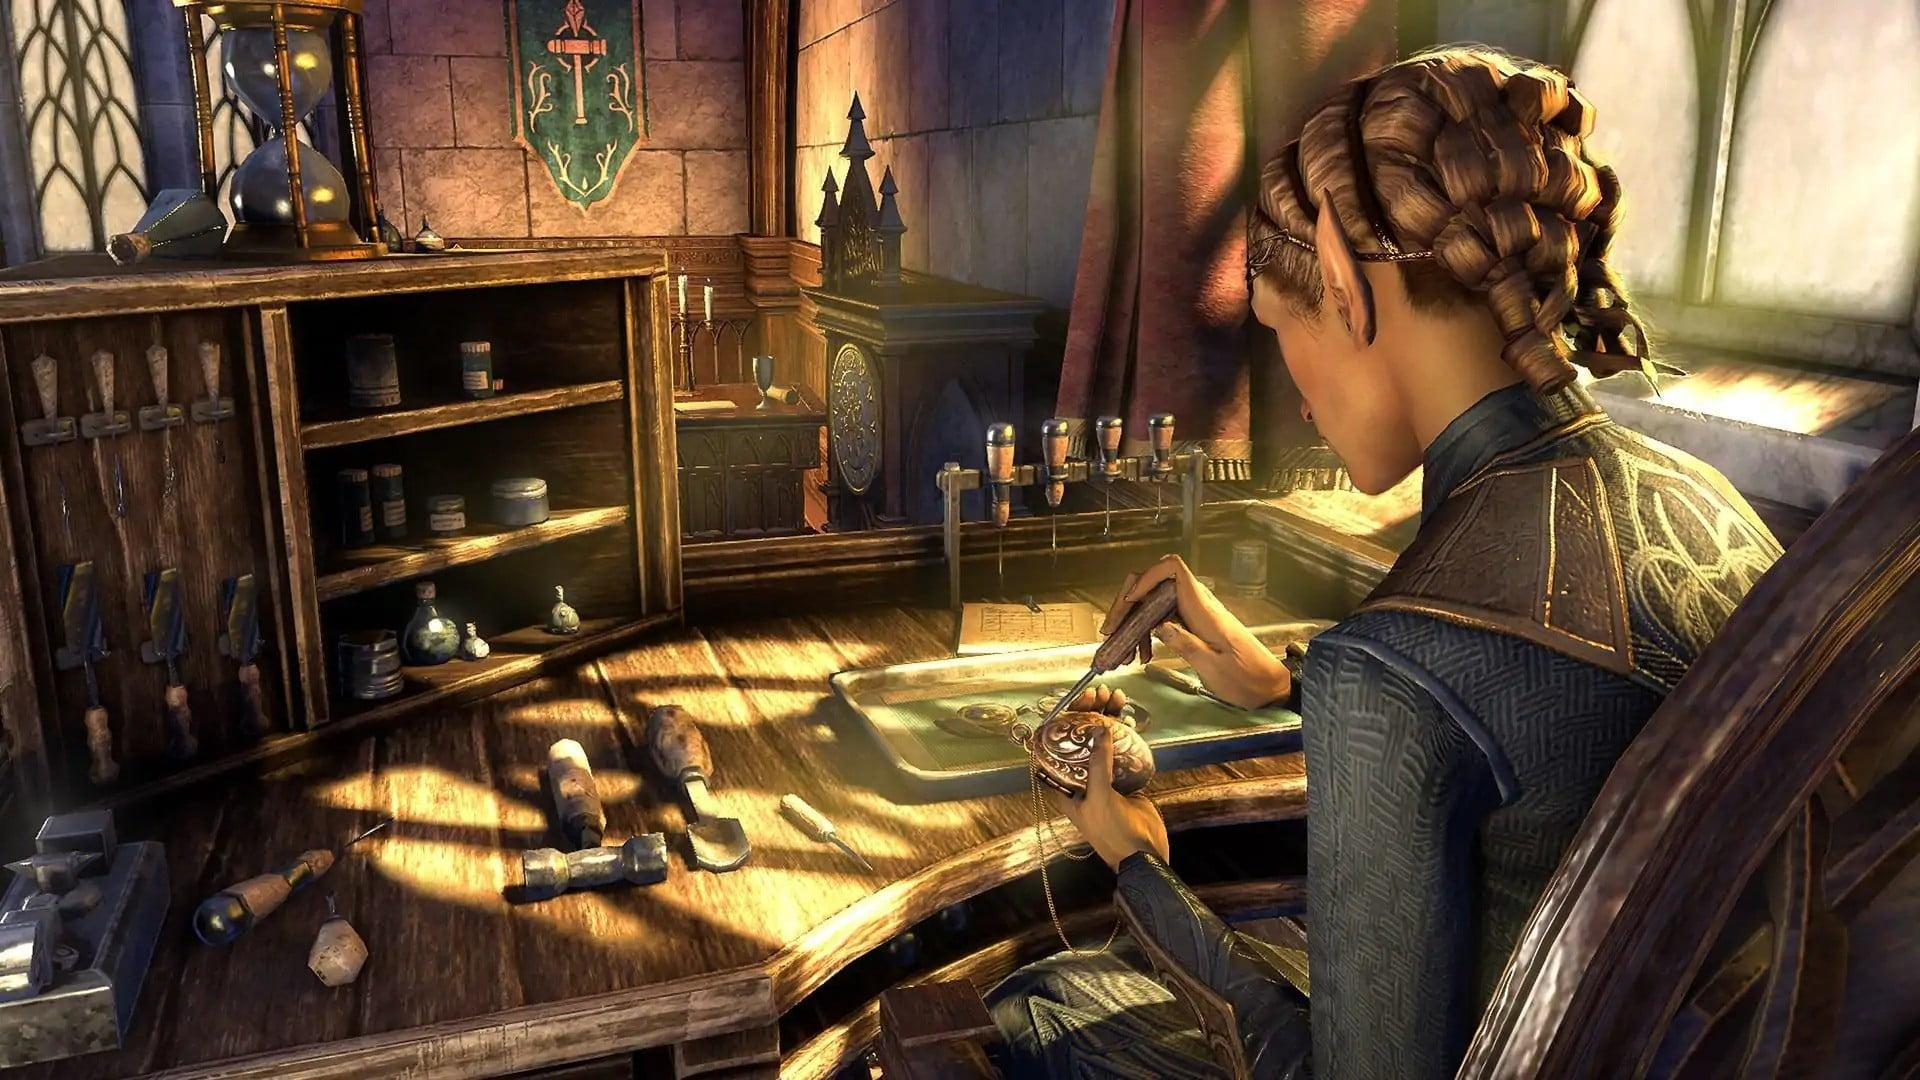 ESO jewelry crafting guide: How to craft jewelry in the Elder Scrolls Online